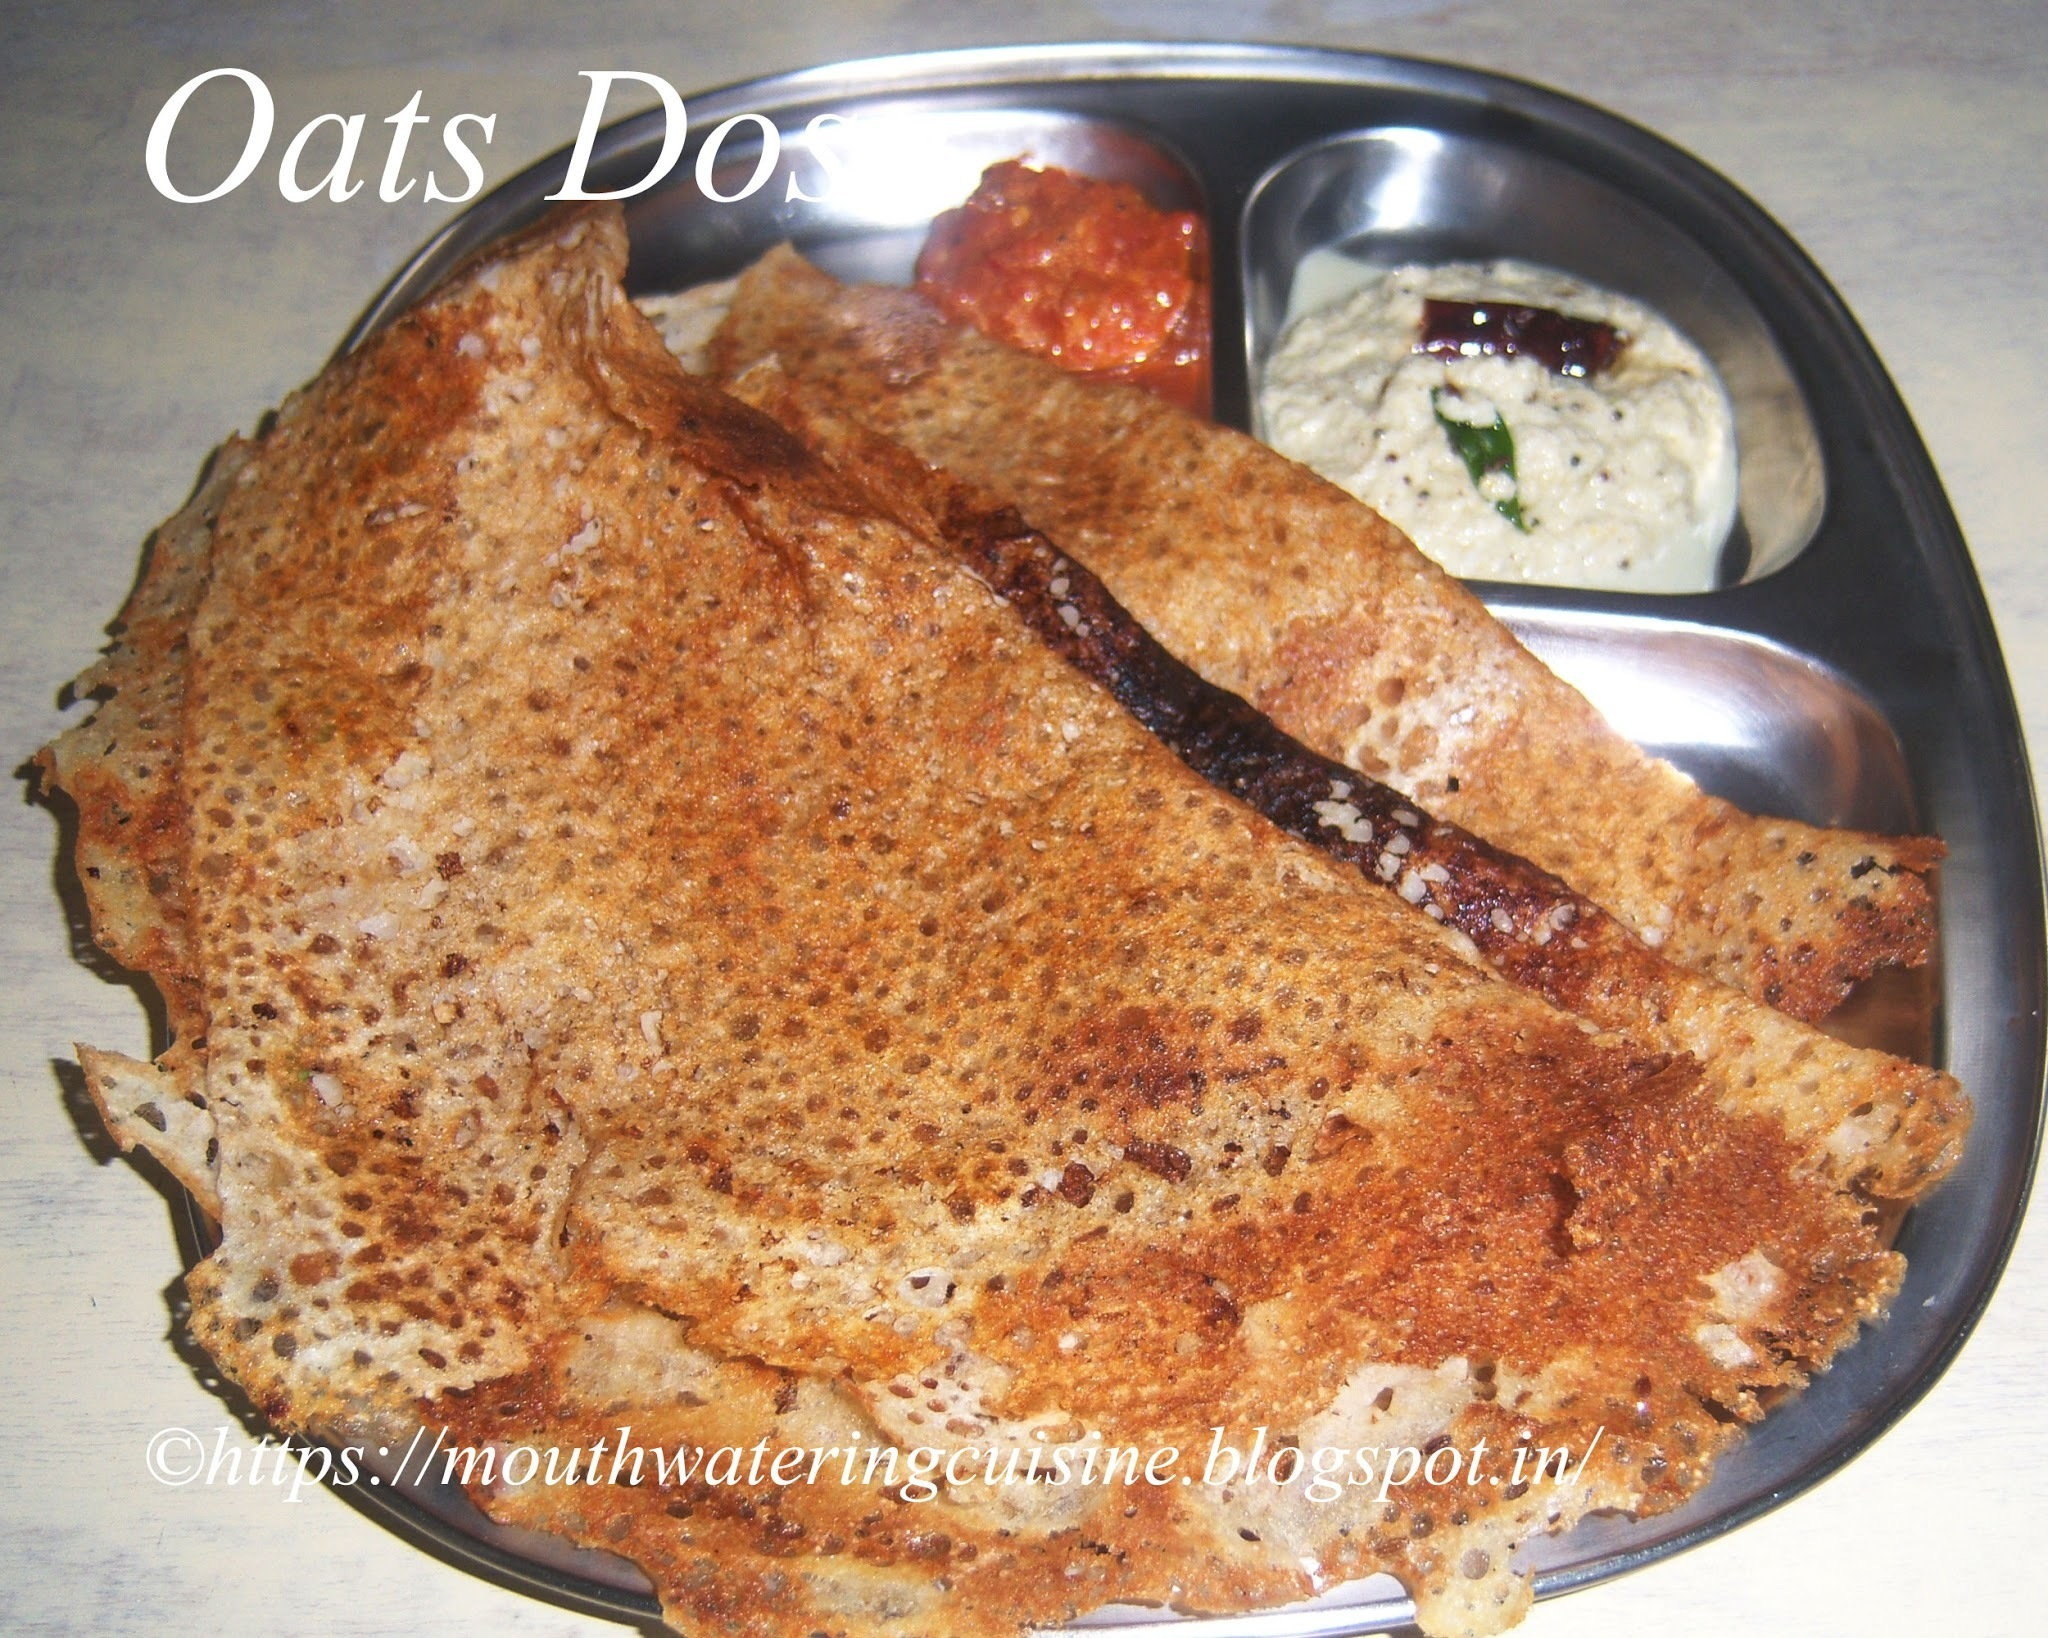 Oats Dosa Recipe -- Oats Recipes -- Instant Oats Dosa Recipe